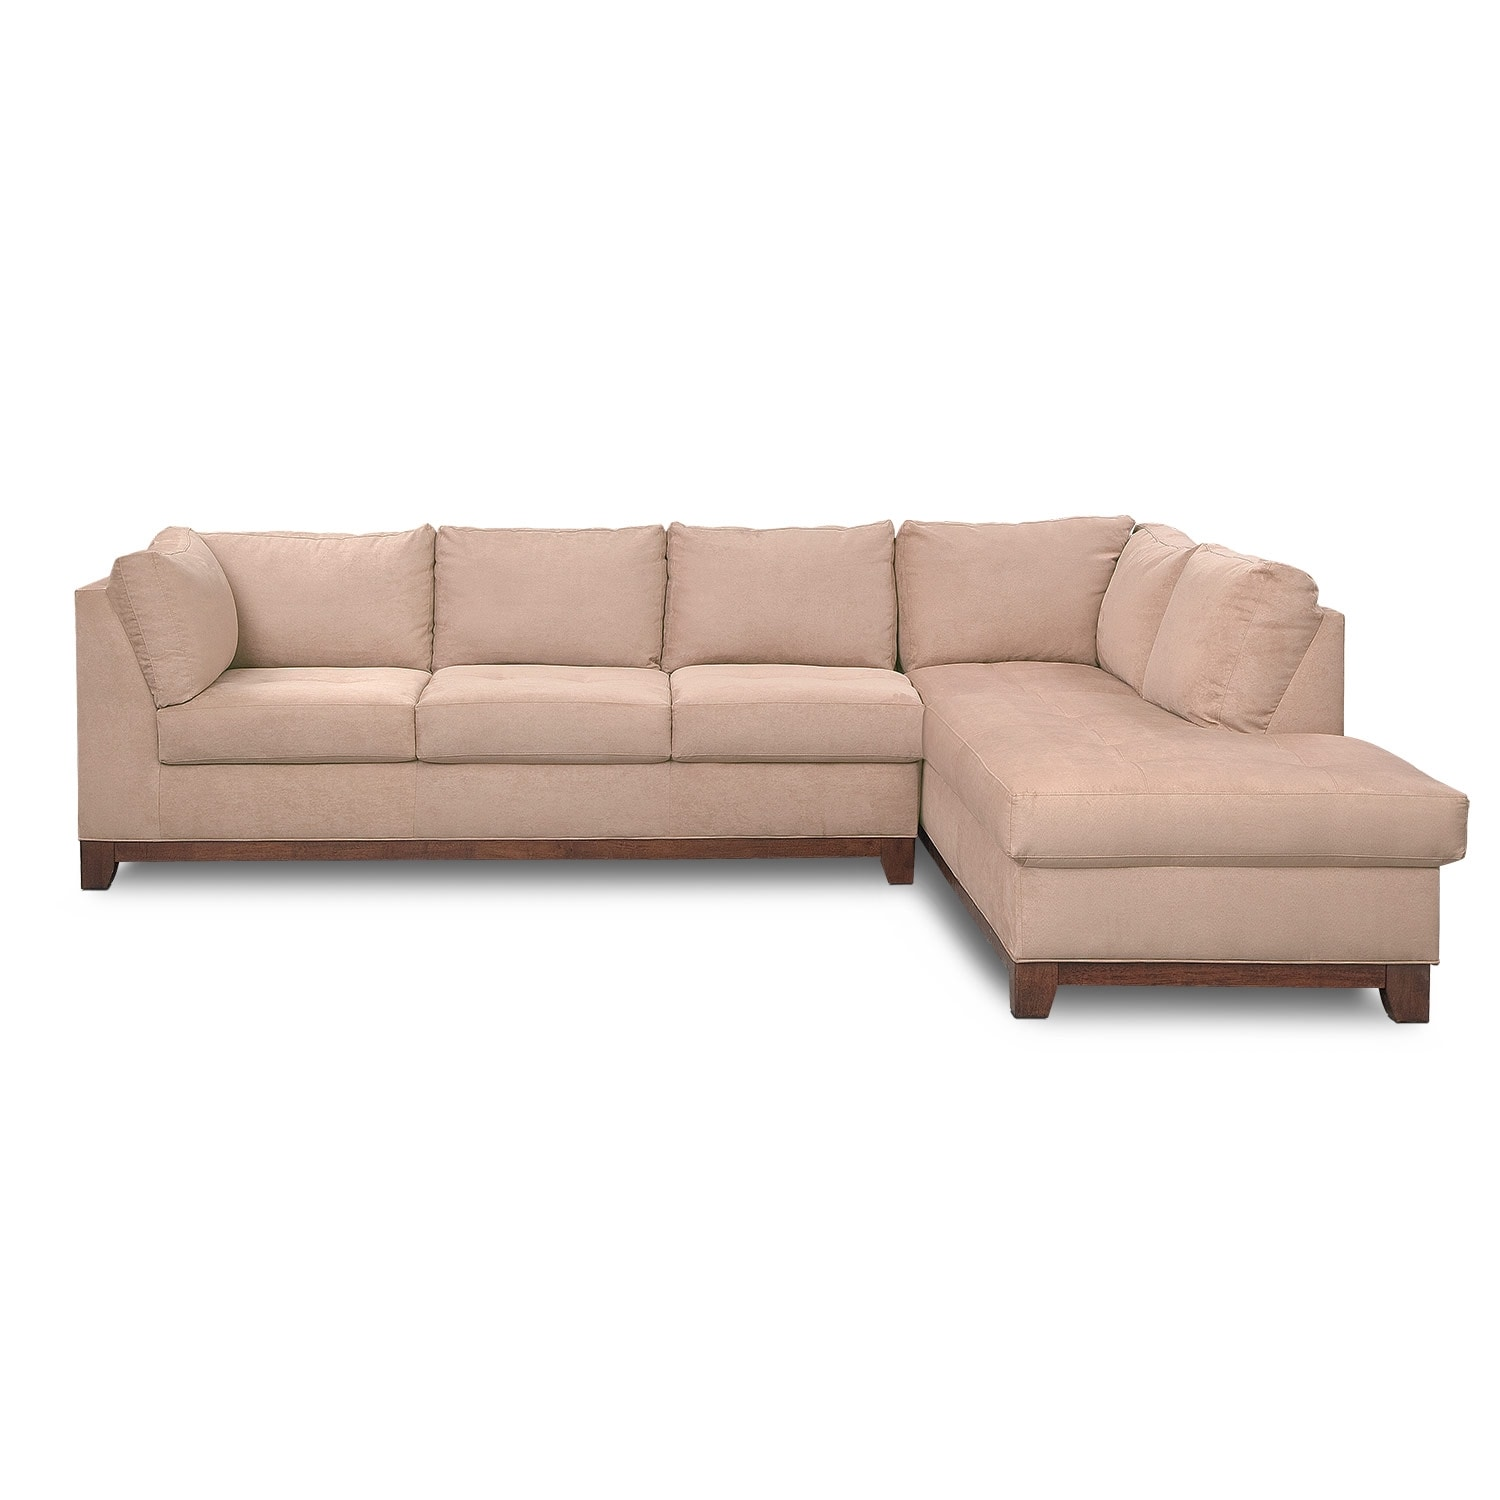 Soho 2 piece sectional with right facing chaise for Sectional couch